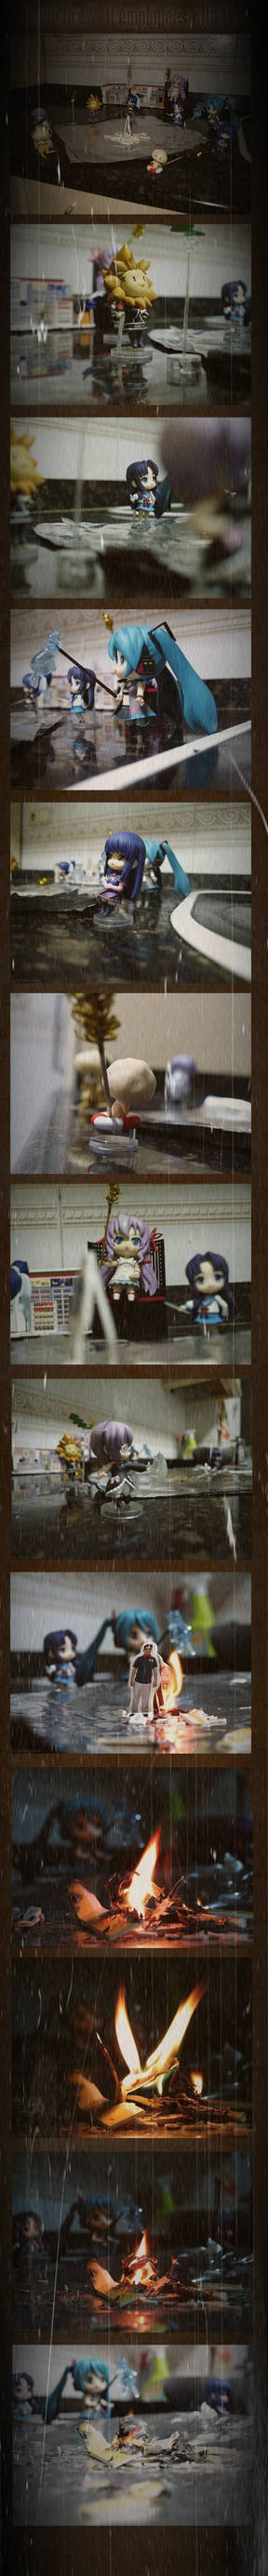 Nendos fire with fire by SingerYuna